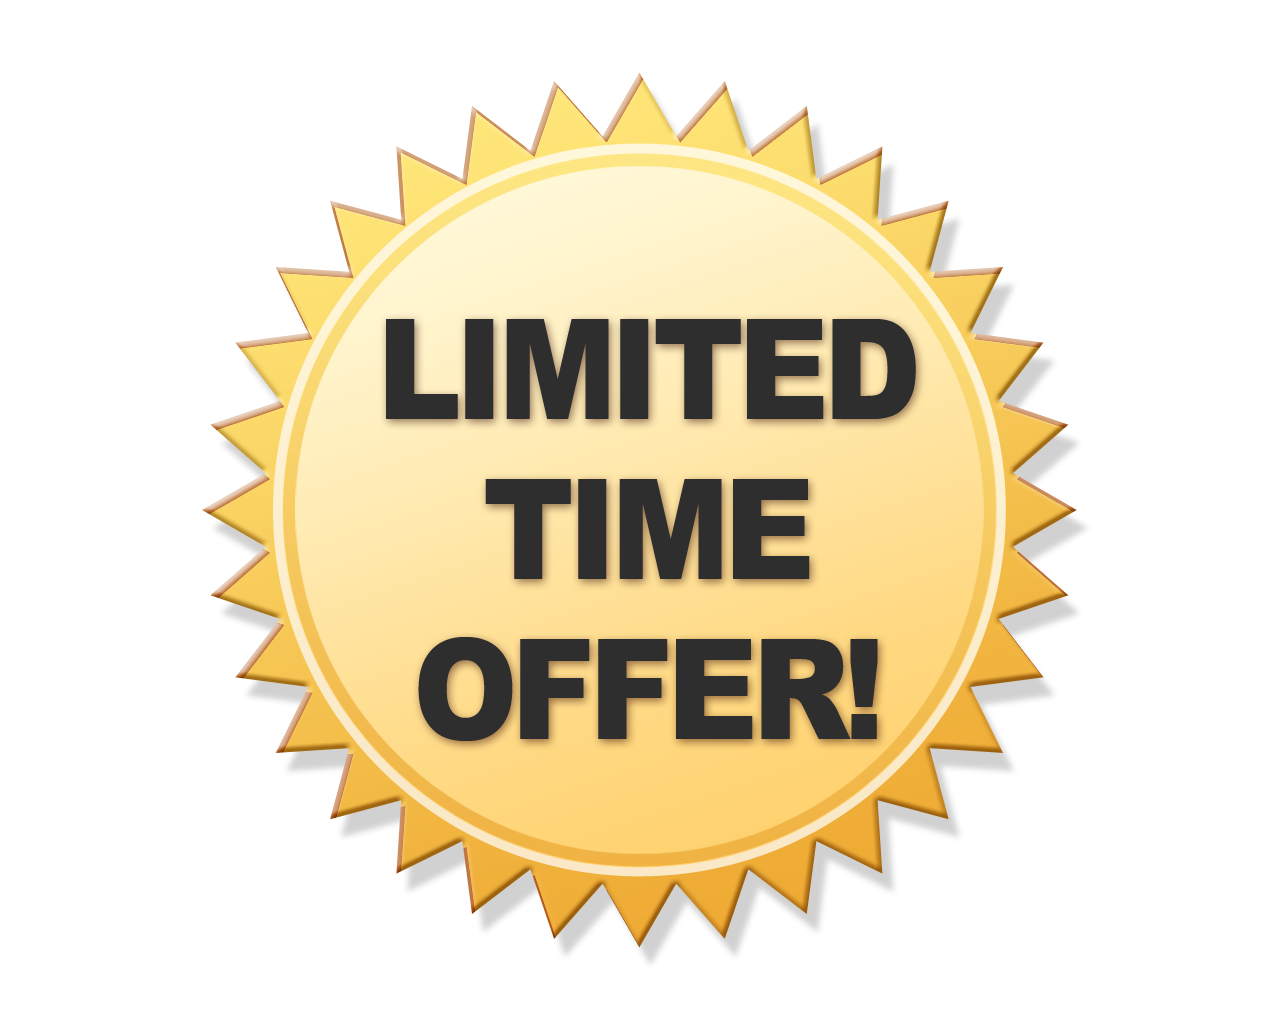 Limited Offer Transparent PNG Image - Limited Offer PNG